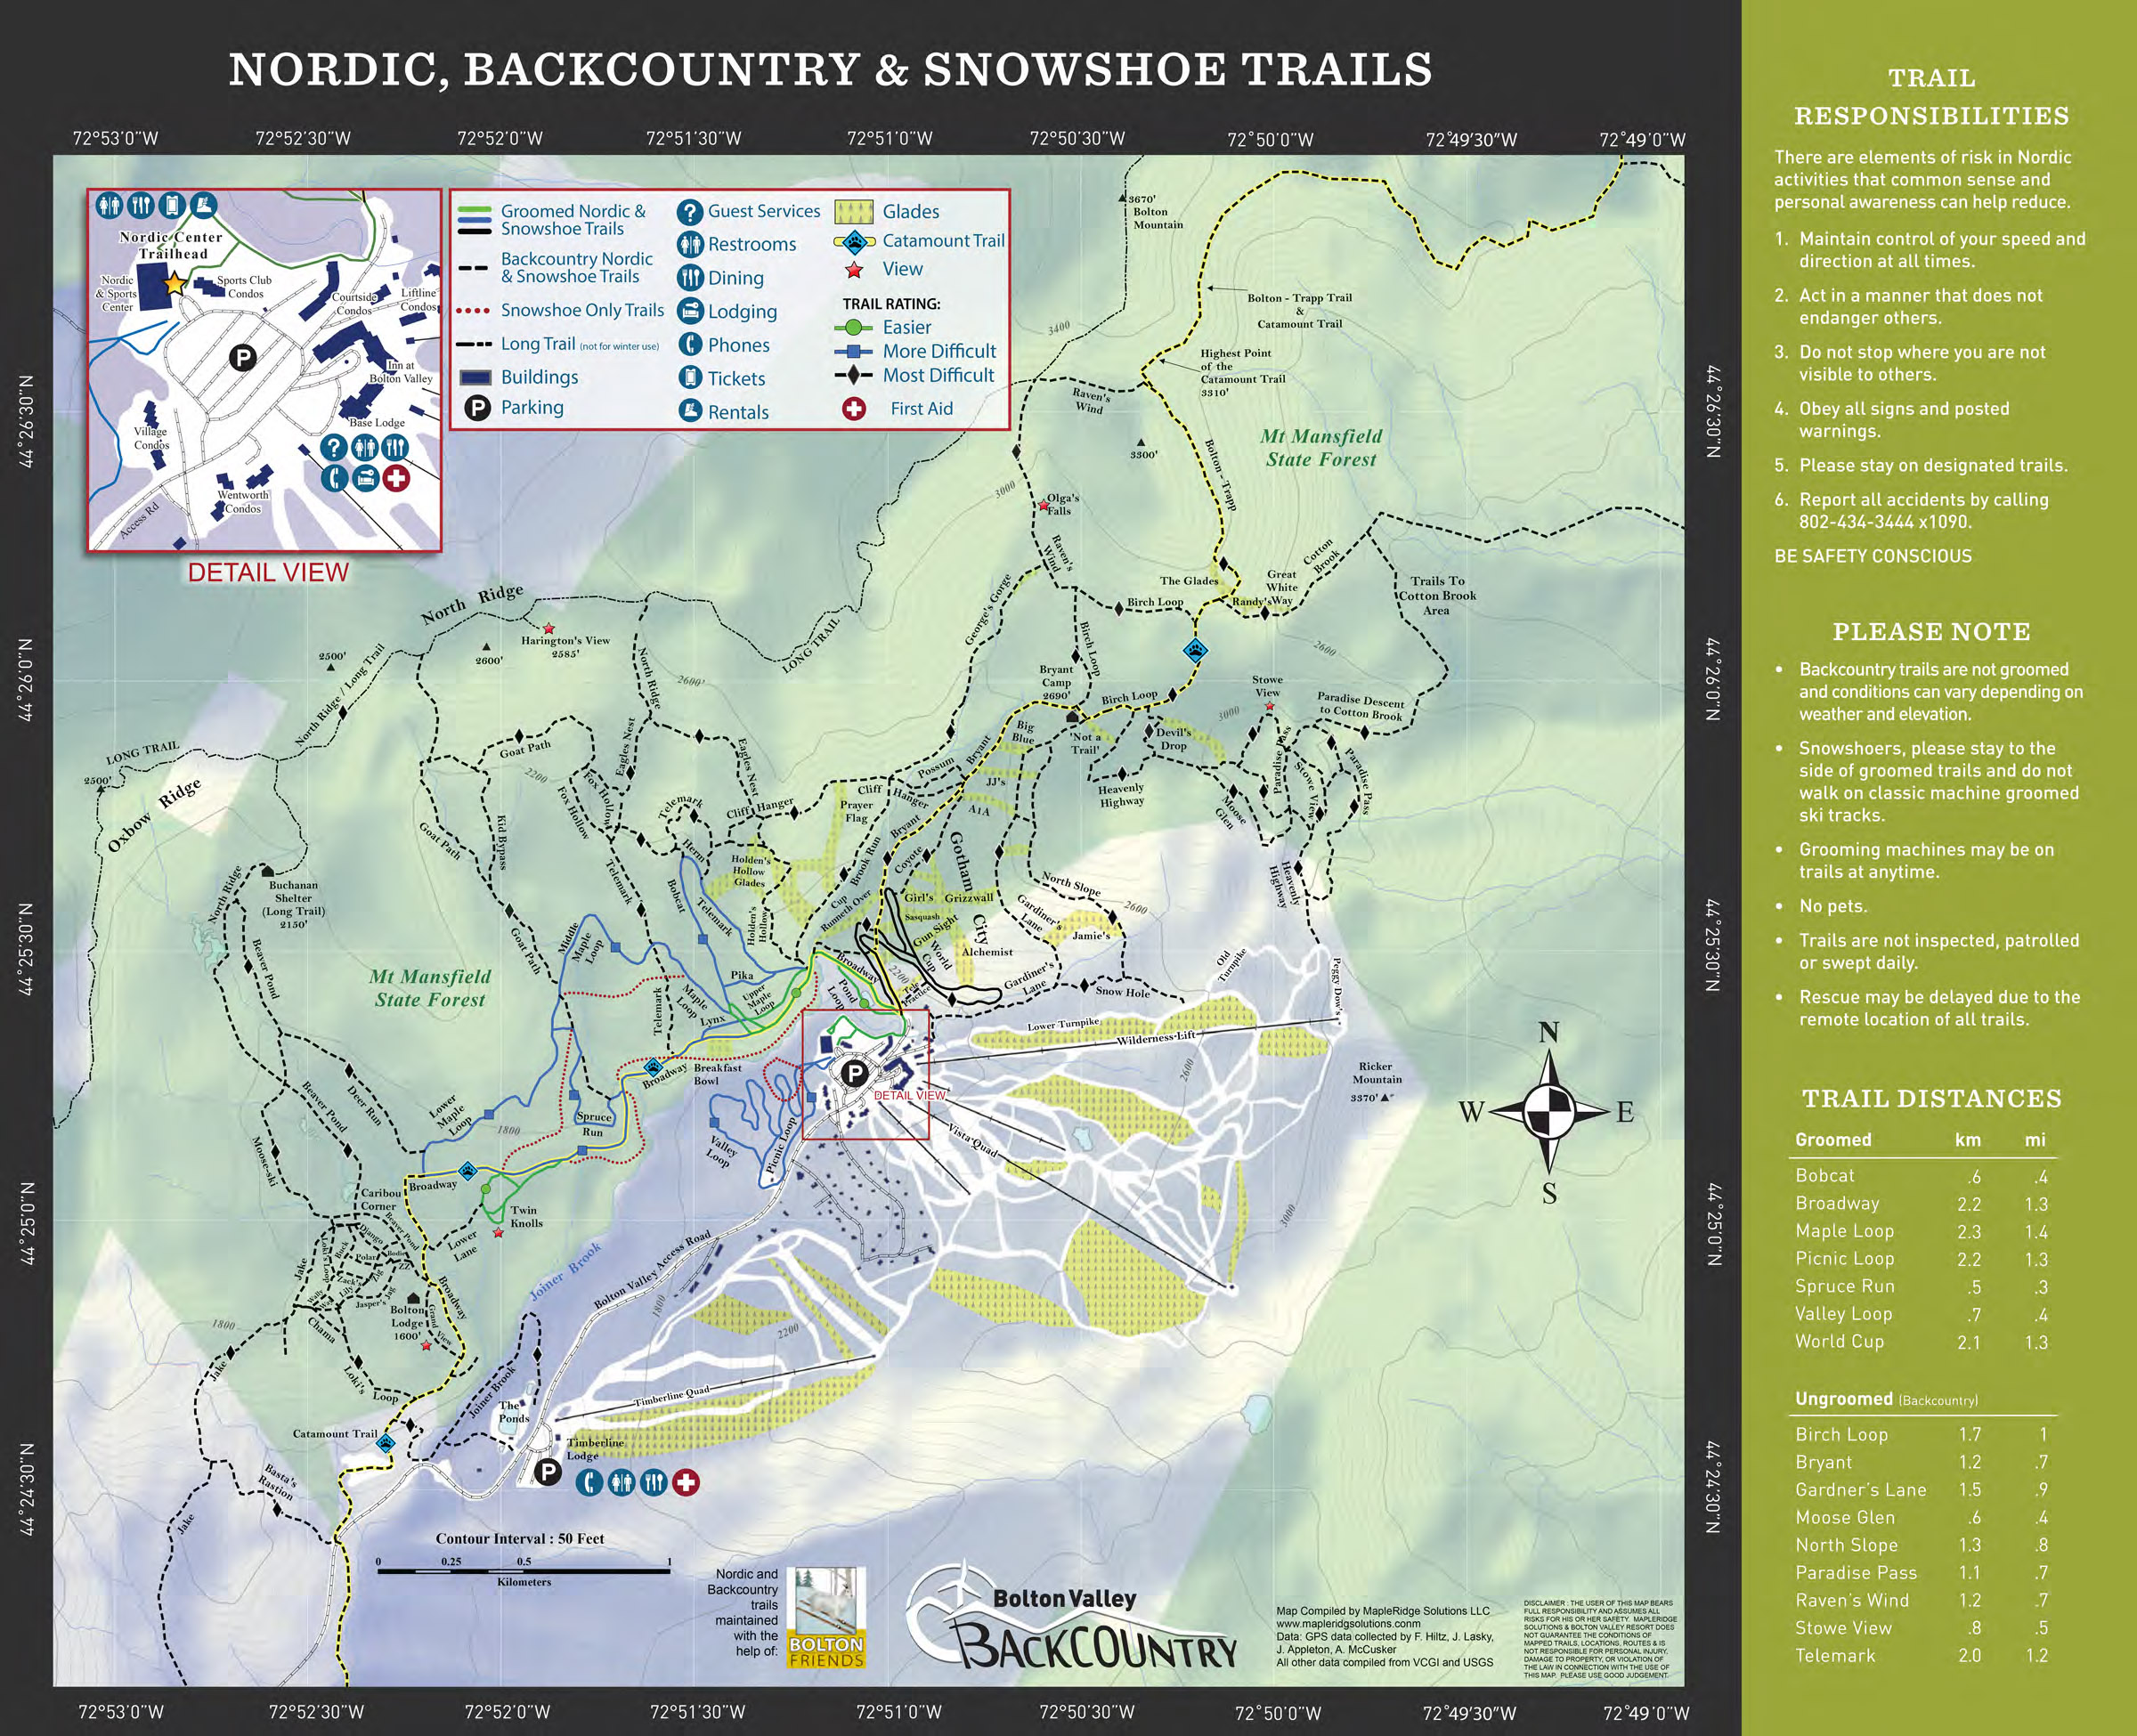 This season's update of Bolton Valley's Nordic & Backcountry trail map is once again listing a lot of the glades.